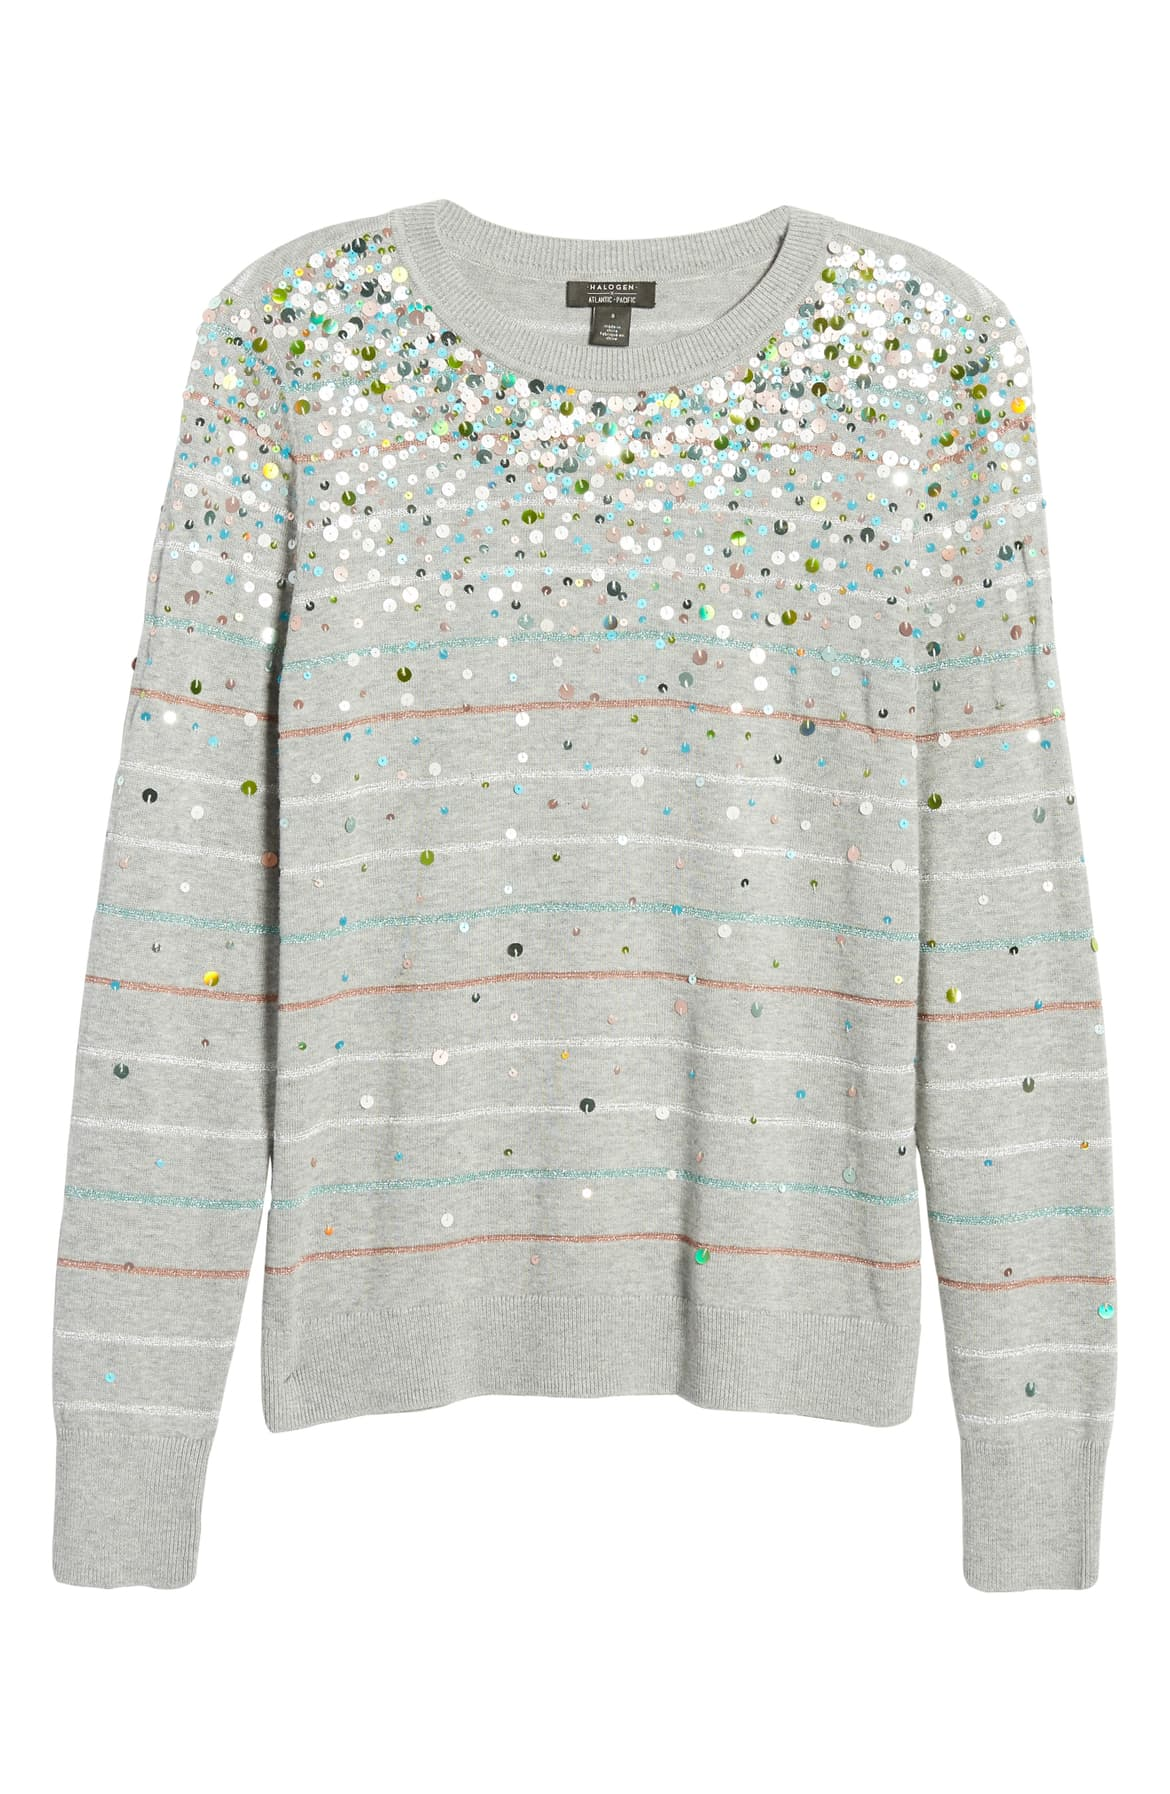 "<a  href=""https://shop.nordstrom.com/s/halogen-x-atlantic-pacific-confetti-metallic-stripe-sweater-nordstrom-exclusive/5356611/full?origin=keywordsearch-personalizedsort&breadcrumb=Home%2FAll%20Results&color=grey%20htr%20multi%20sequin%20stripe"" target=""_blank"" title=""https://shop.nordstrom.com/s/halogen-x-atlantic-pacific-confetti-metallic-stripe-sweater-nordstrom-exclusive/5356611/full?origin=keywordsearch-personalizedsort&breadcrumb=Home%2FAll%20Results&color=grey%20htr%20multi%20sequin%20stripe"">Halogen x Atlantic Pacific Confetti Metallic Stripe - $119</a>. From cozy to gold hued to tailored, Nordstrom has the hottest trends for getting glam this holiday season! (Credit: Nordstrom)"